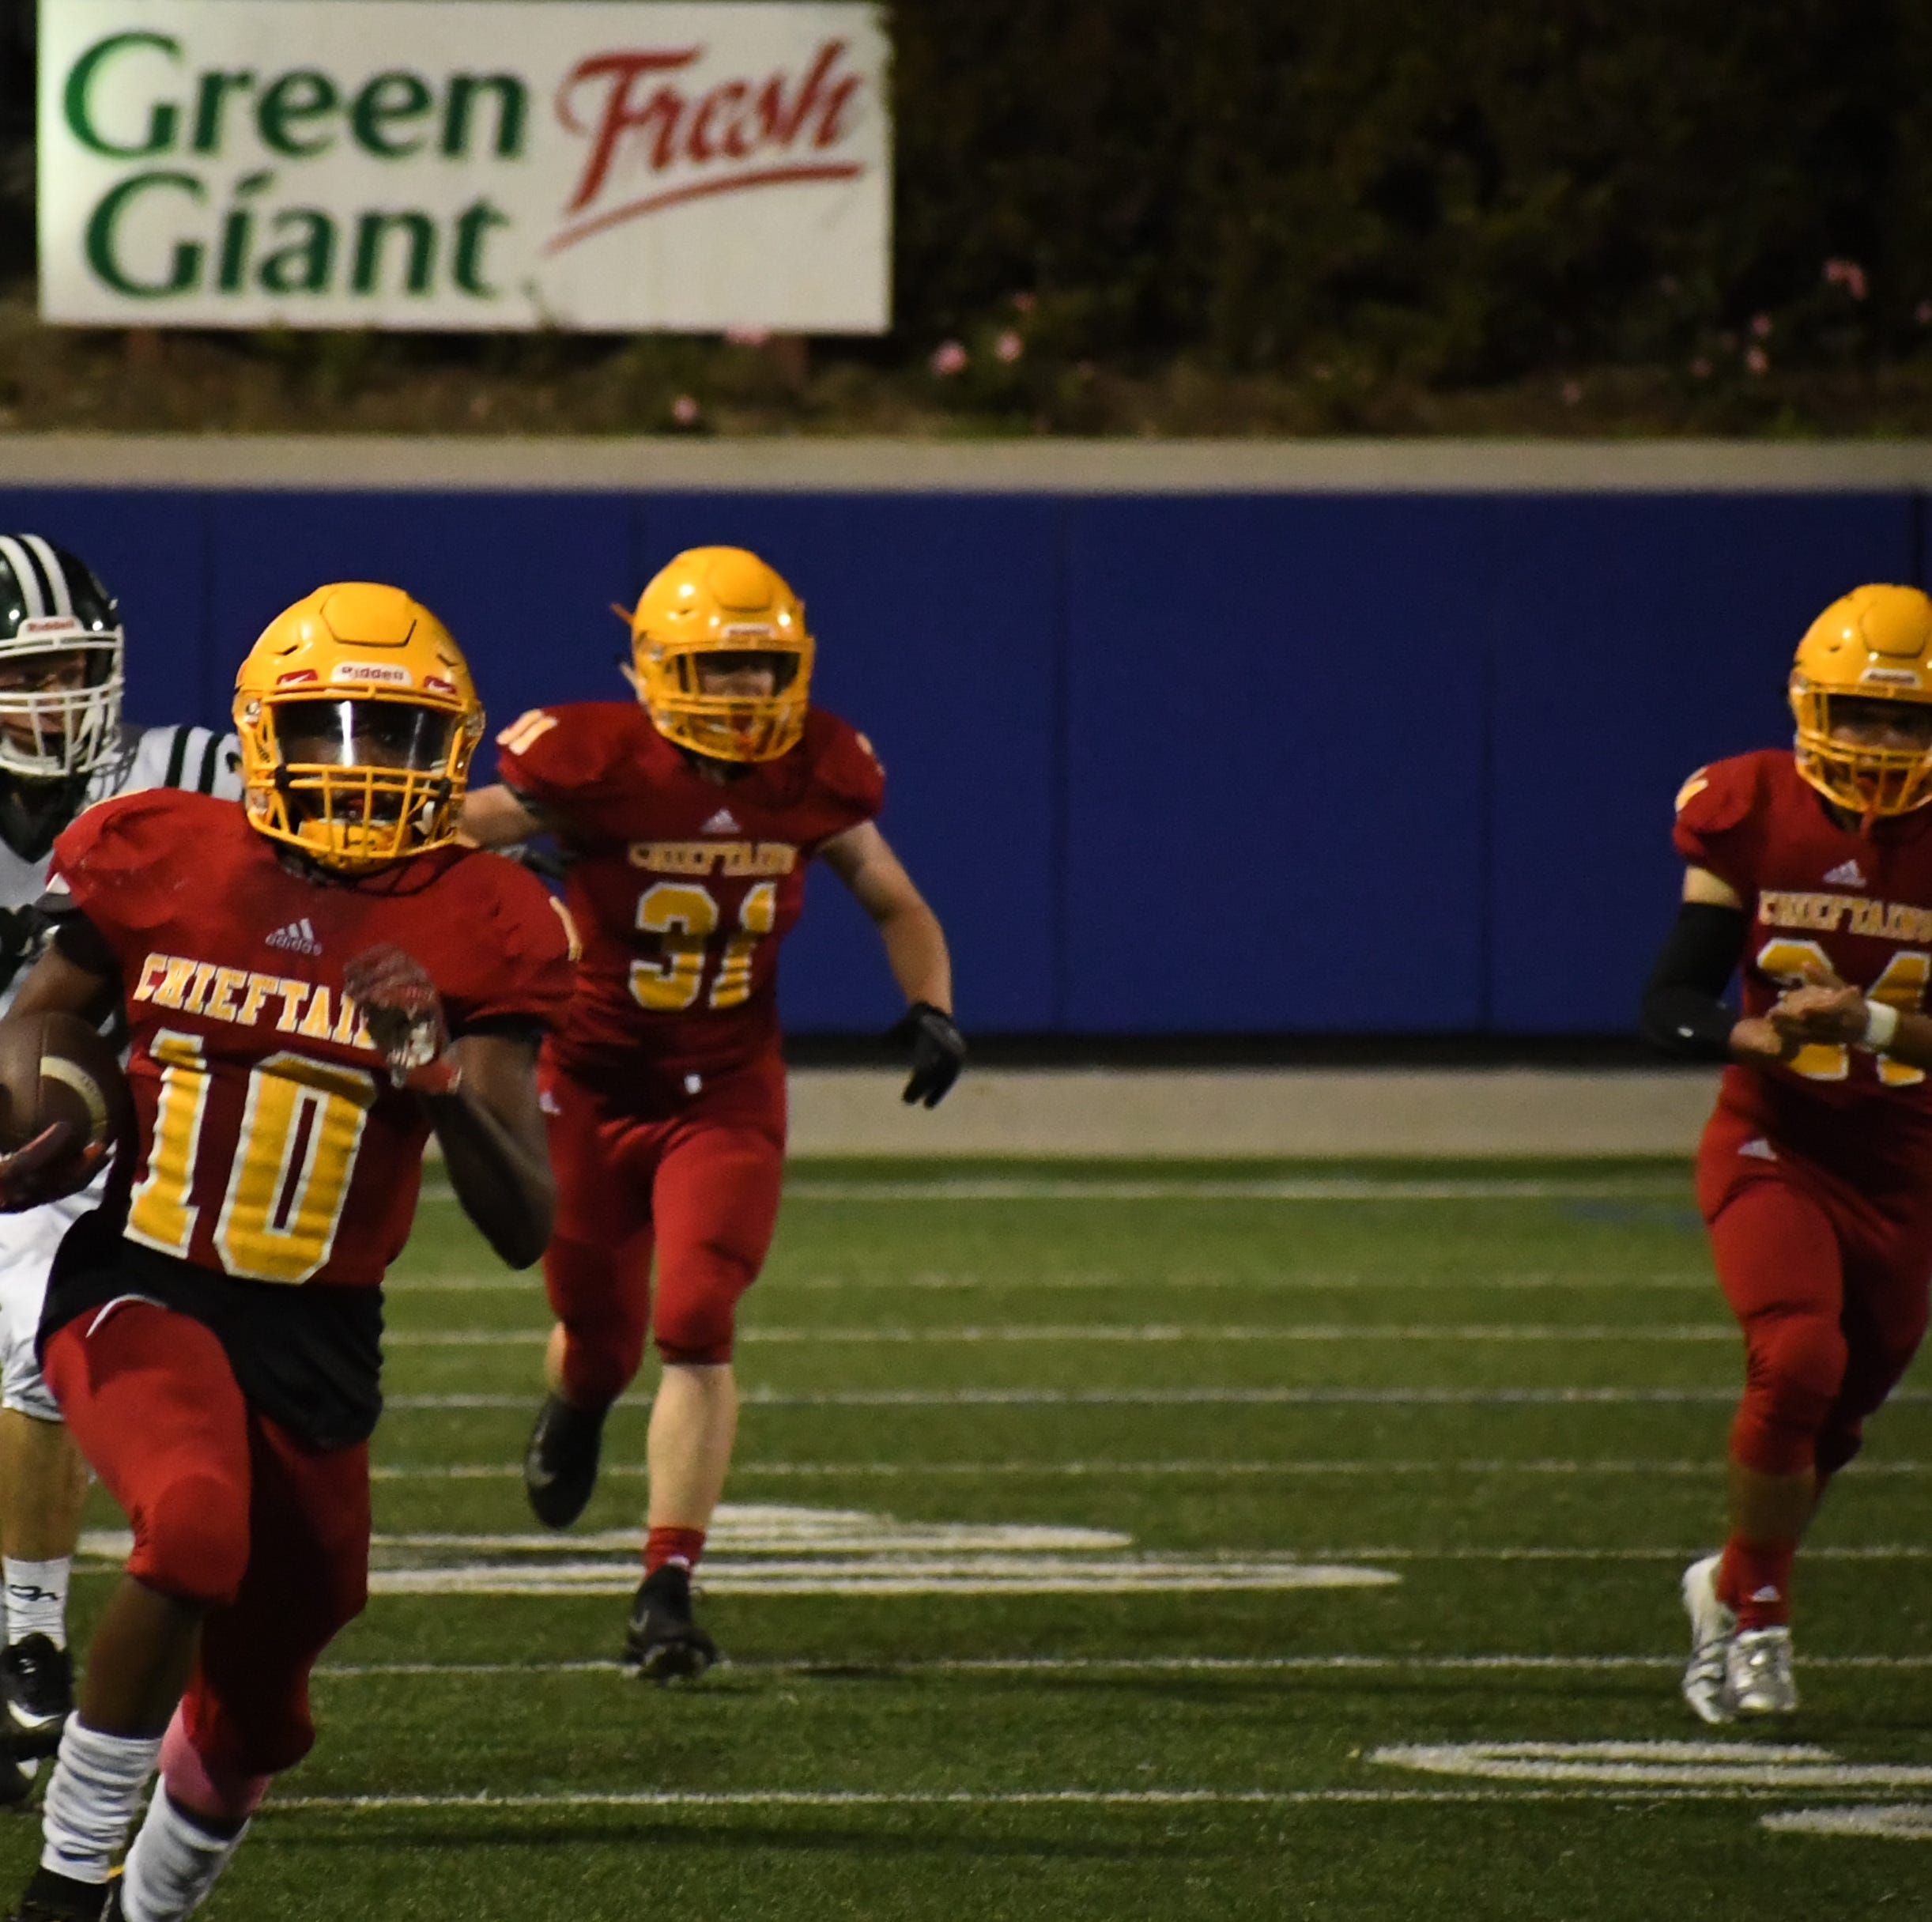 Palma junior Jon Jon Berring's second half kick return swung the momentum back to the Chieftains after falling behind 6-3.